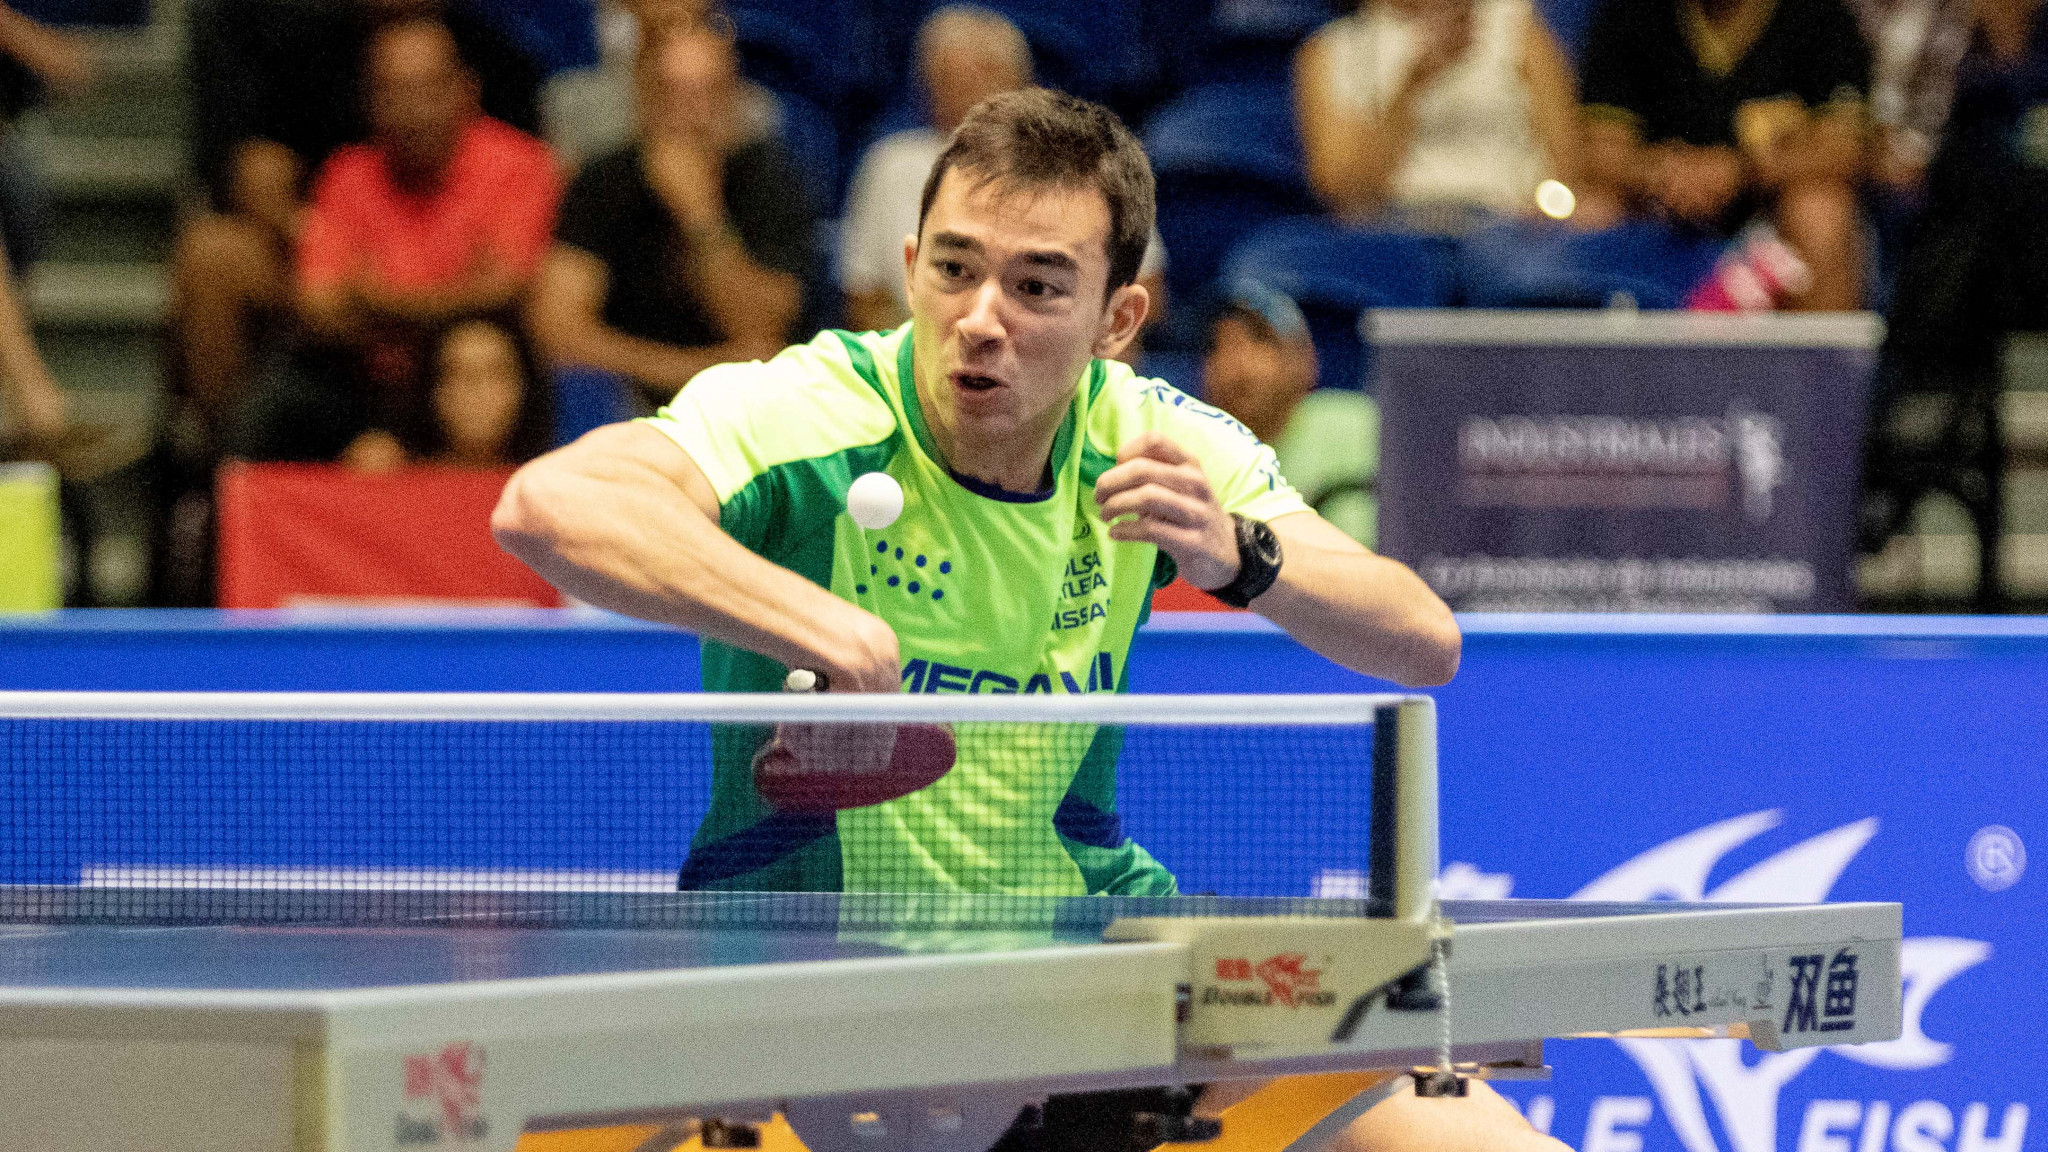 Calderano and Diaz face tough defence of ITTF Pan American Cup titles